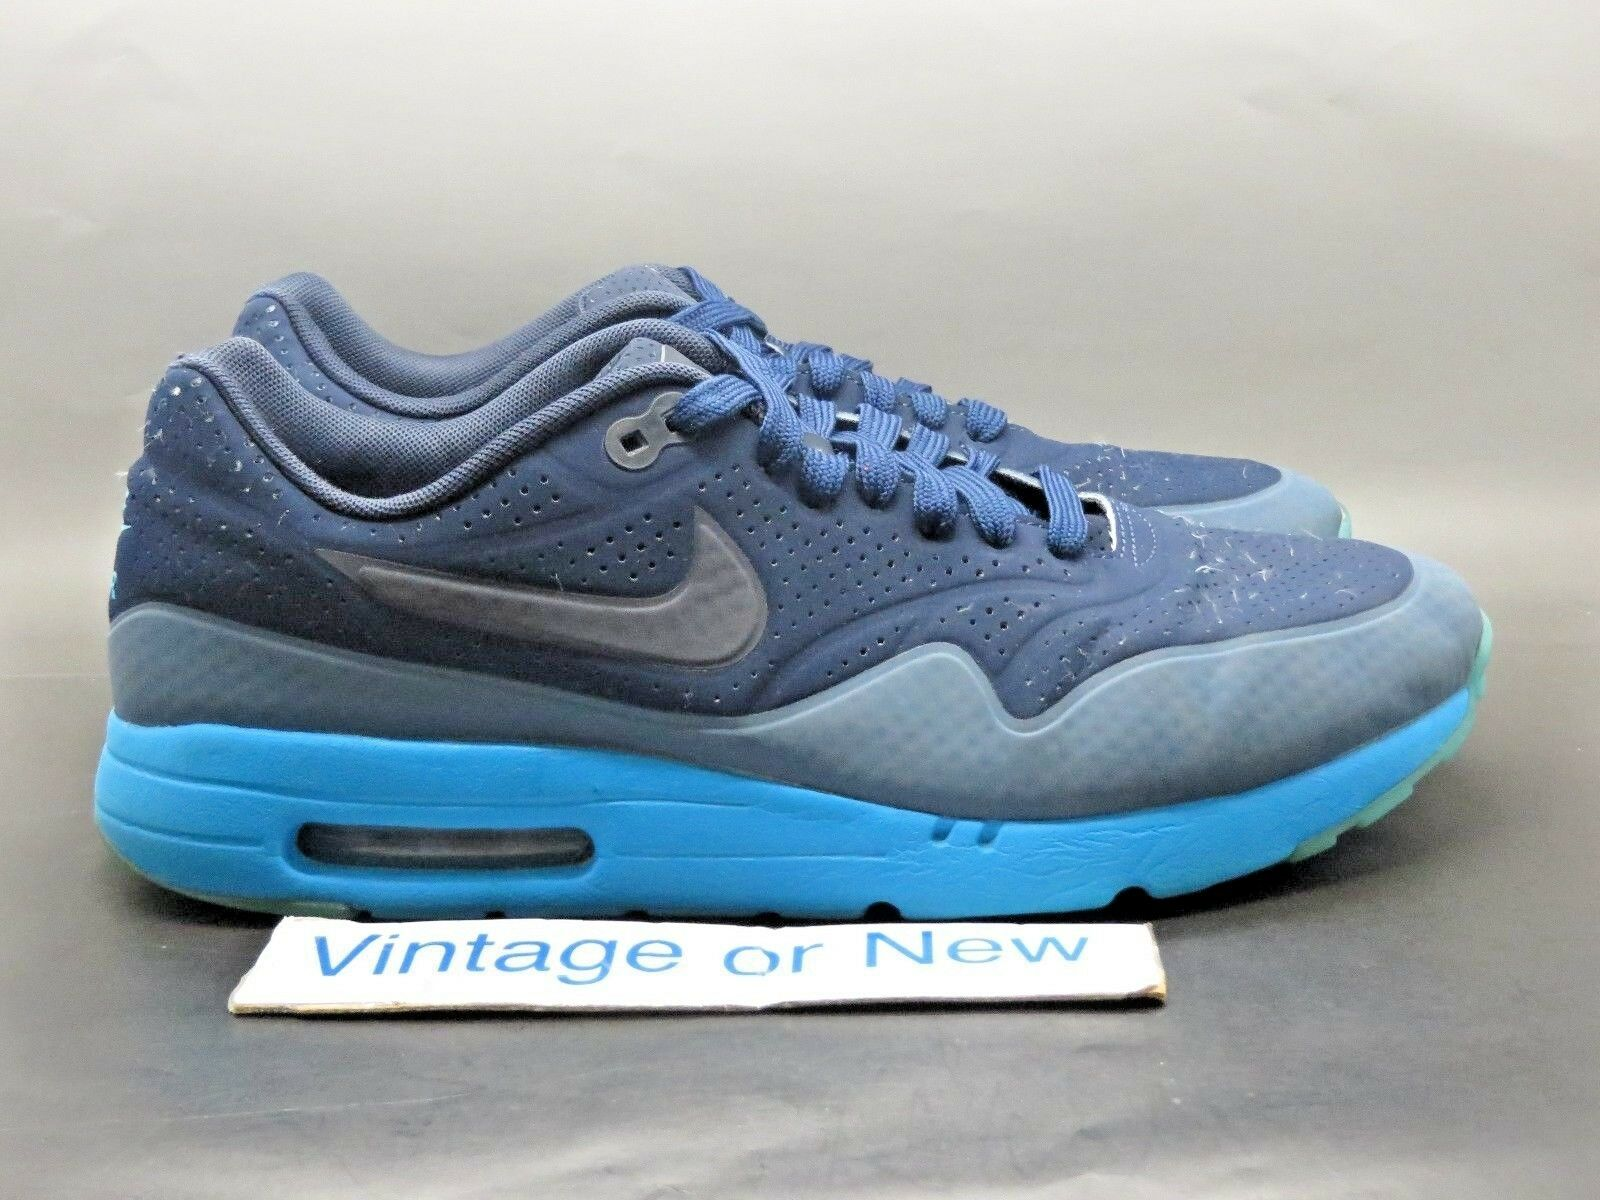 Nike Air Max 1 Ultra Moire Navy Blue Running Shoes 2015 sz 10.5